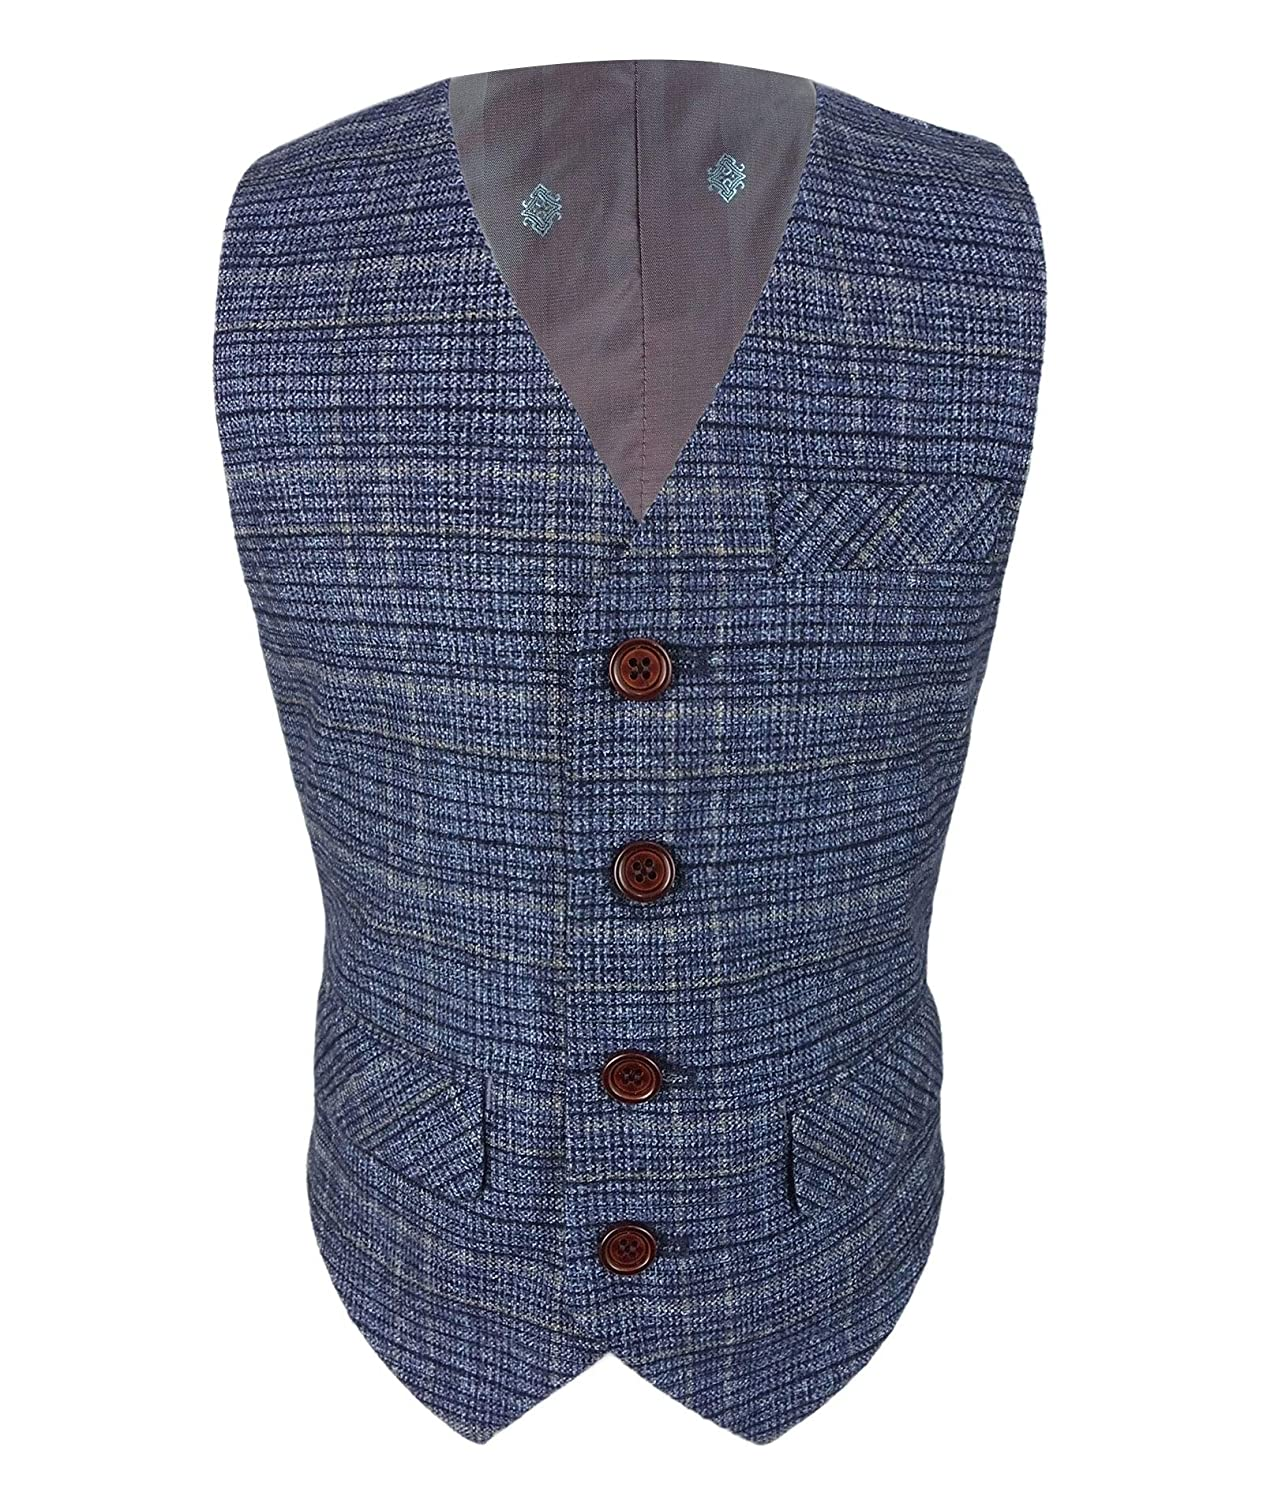 dd5877d20ac6 Romano Boys Slim Fit Check Tweed Wedding Waistcoats  Amazon.co.uk  Clothing